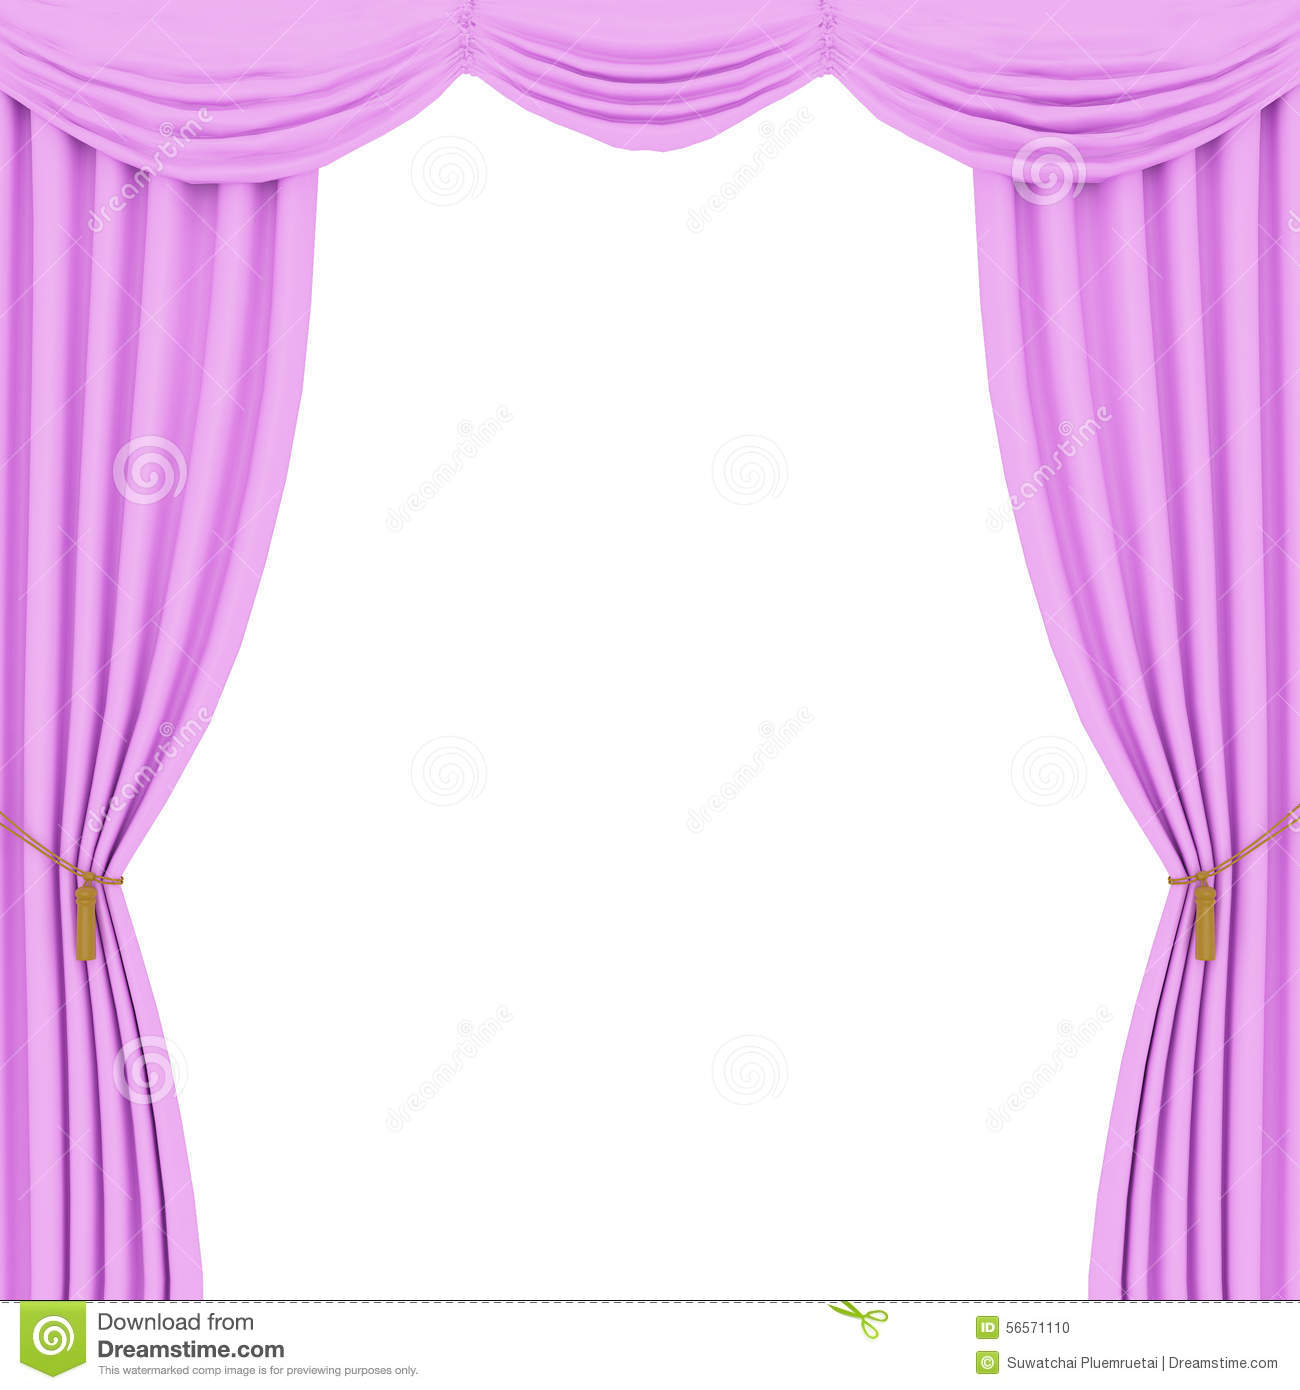 Pink curtains background stock illustration. Illustration of decor ... for Pink Curtains Background  557ylc